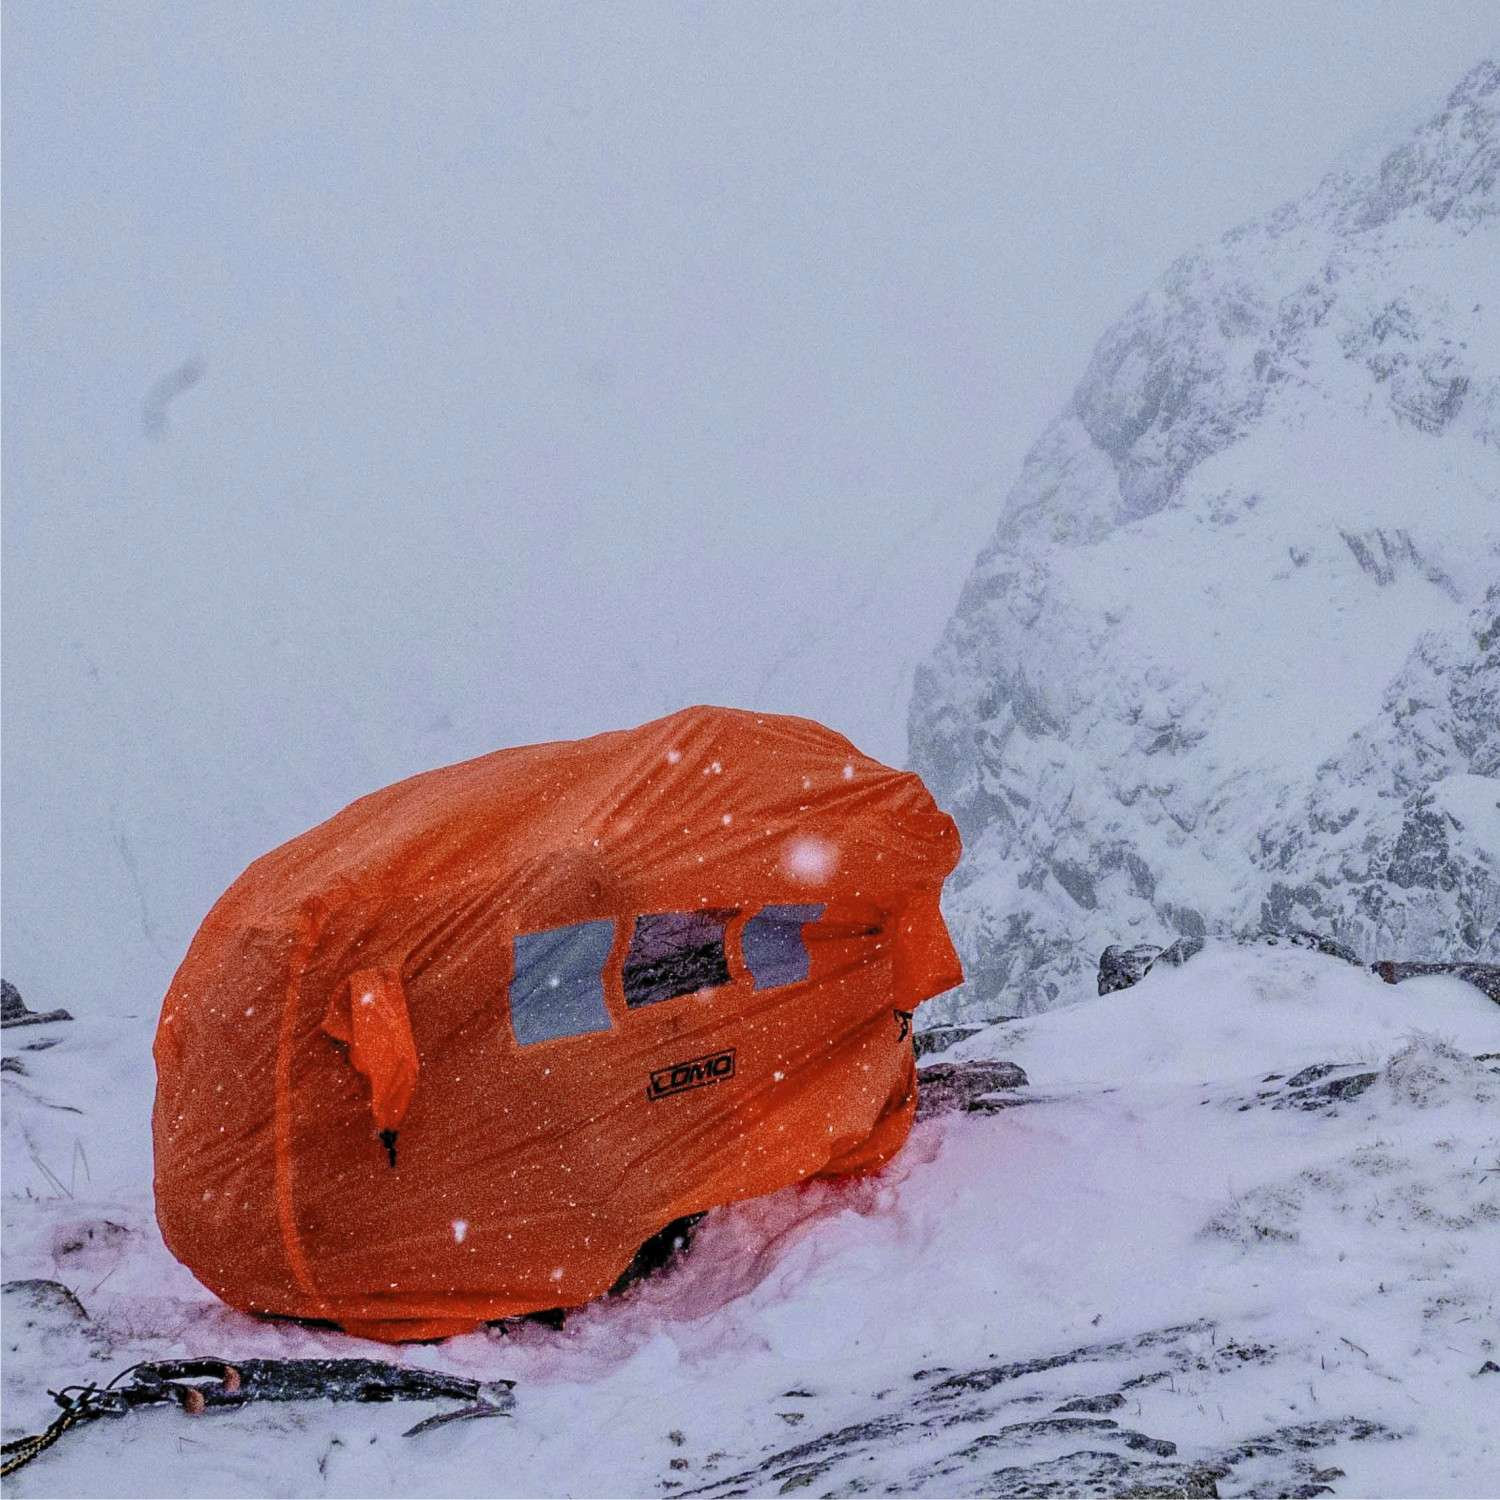 Shelter From Storm With Devices >> Emergency Storm Shelter 2 3 Man Bothy Bag